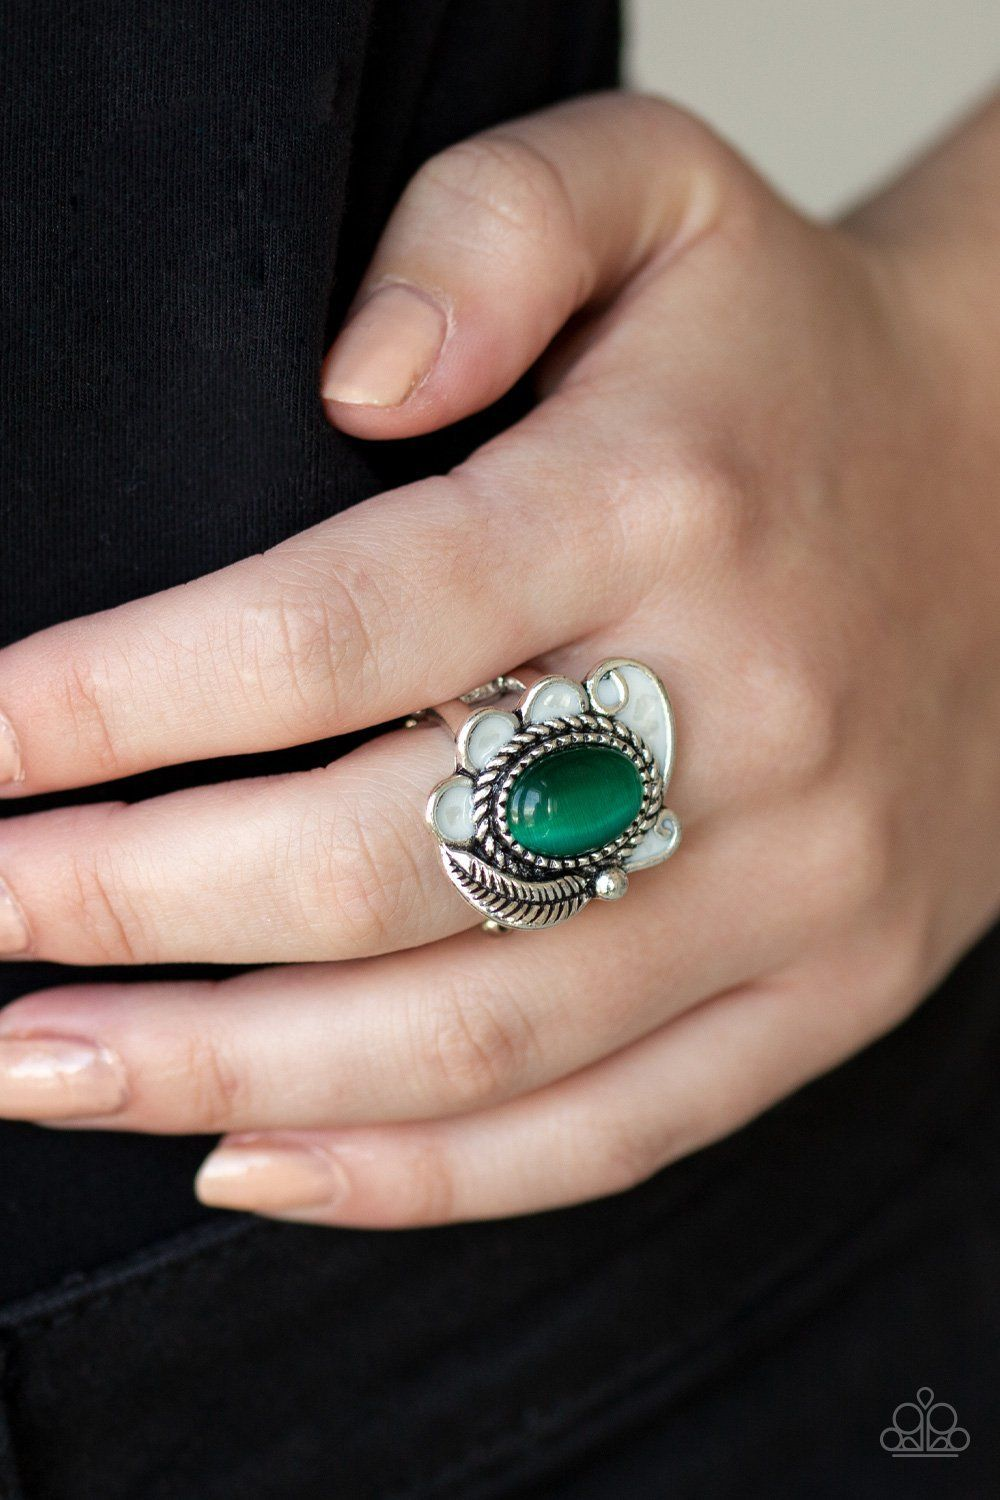 Fairytale Magic Green Moonstone Ring Paparazzi